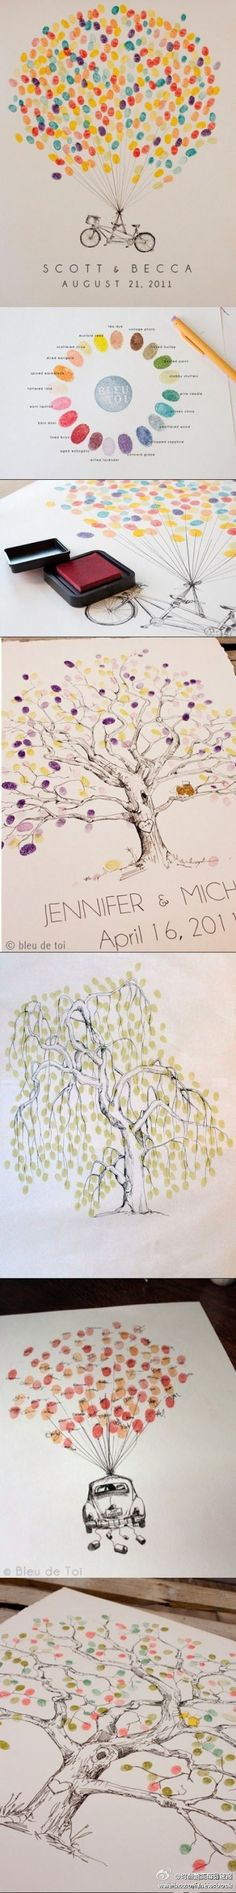 """Morgan- to do an oak tree with different color green thumb prints and guests sign their name on the """"leaf""""???"""